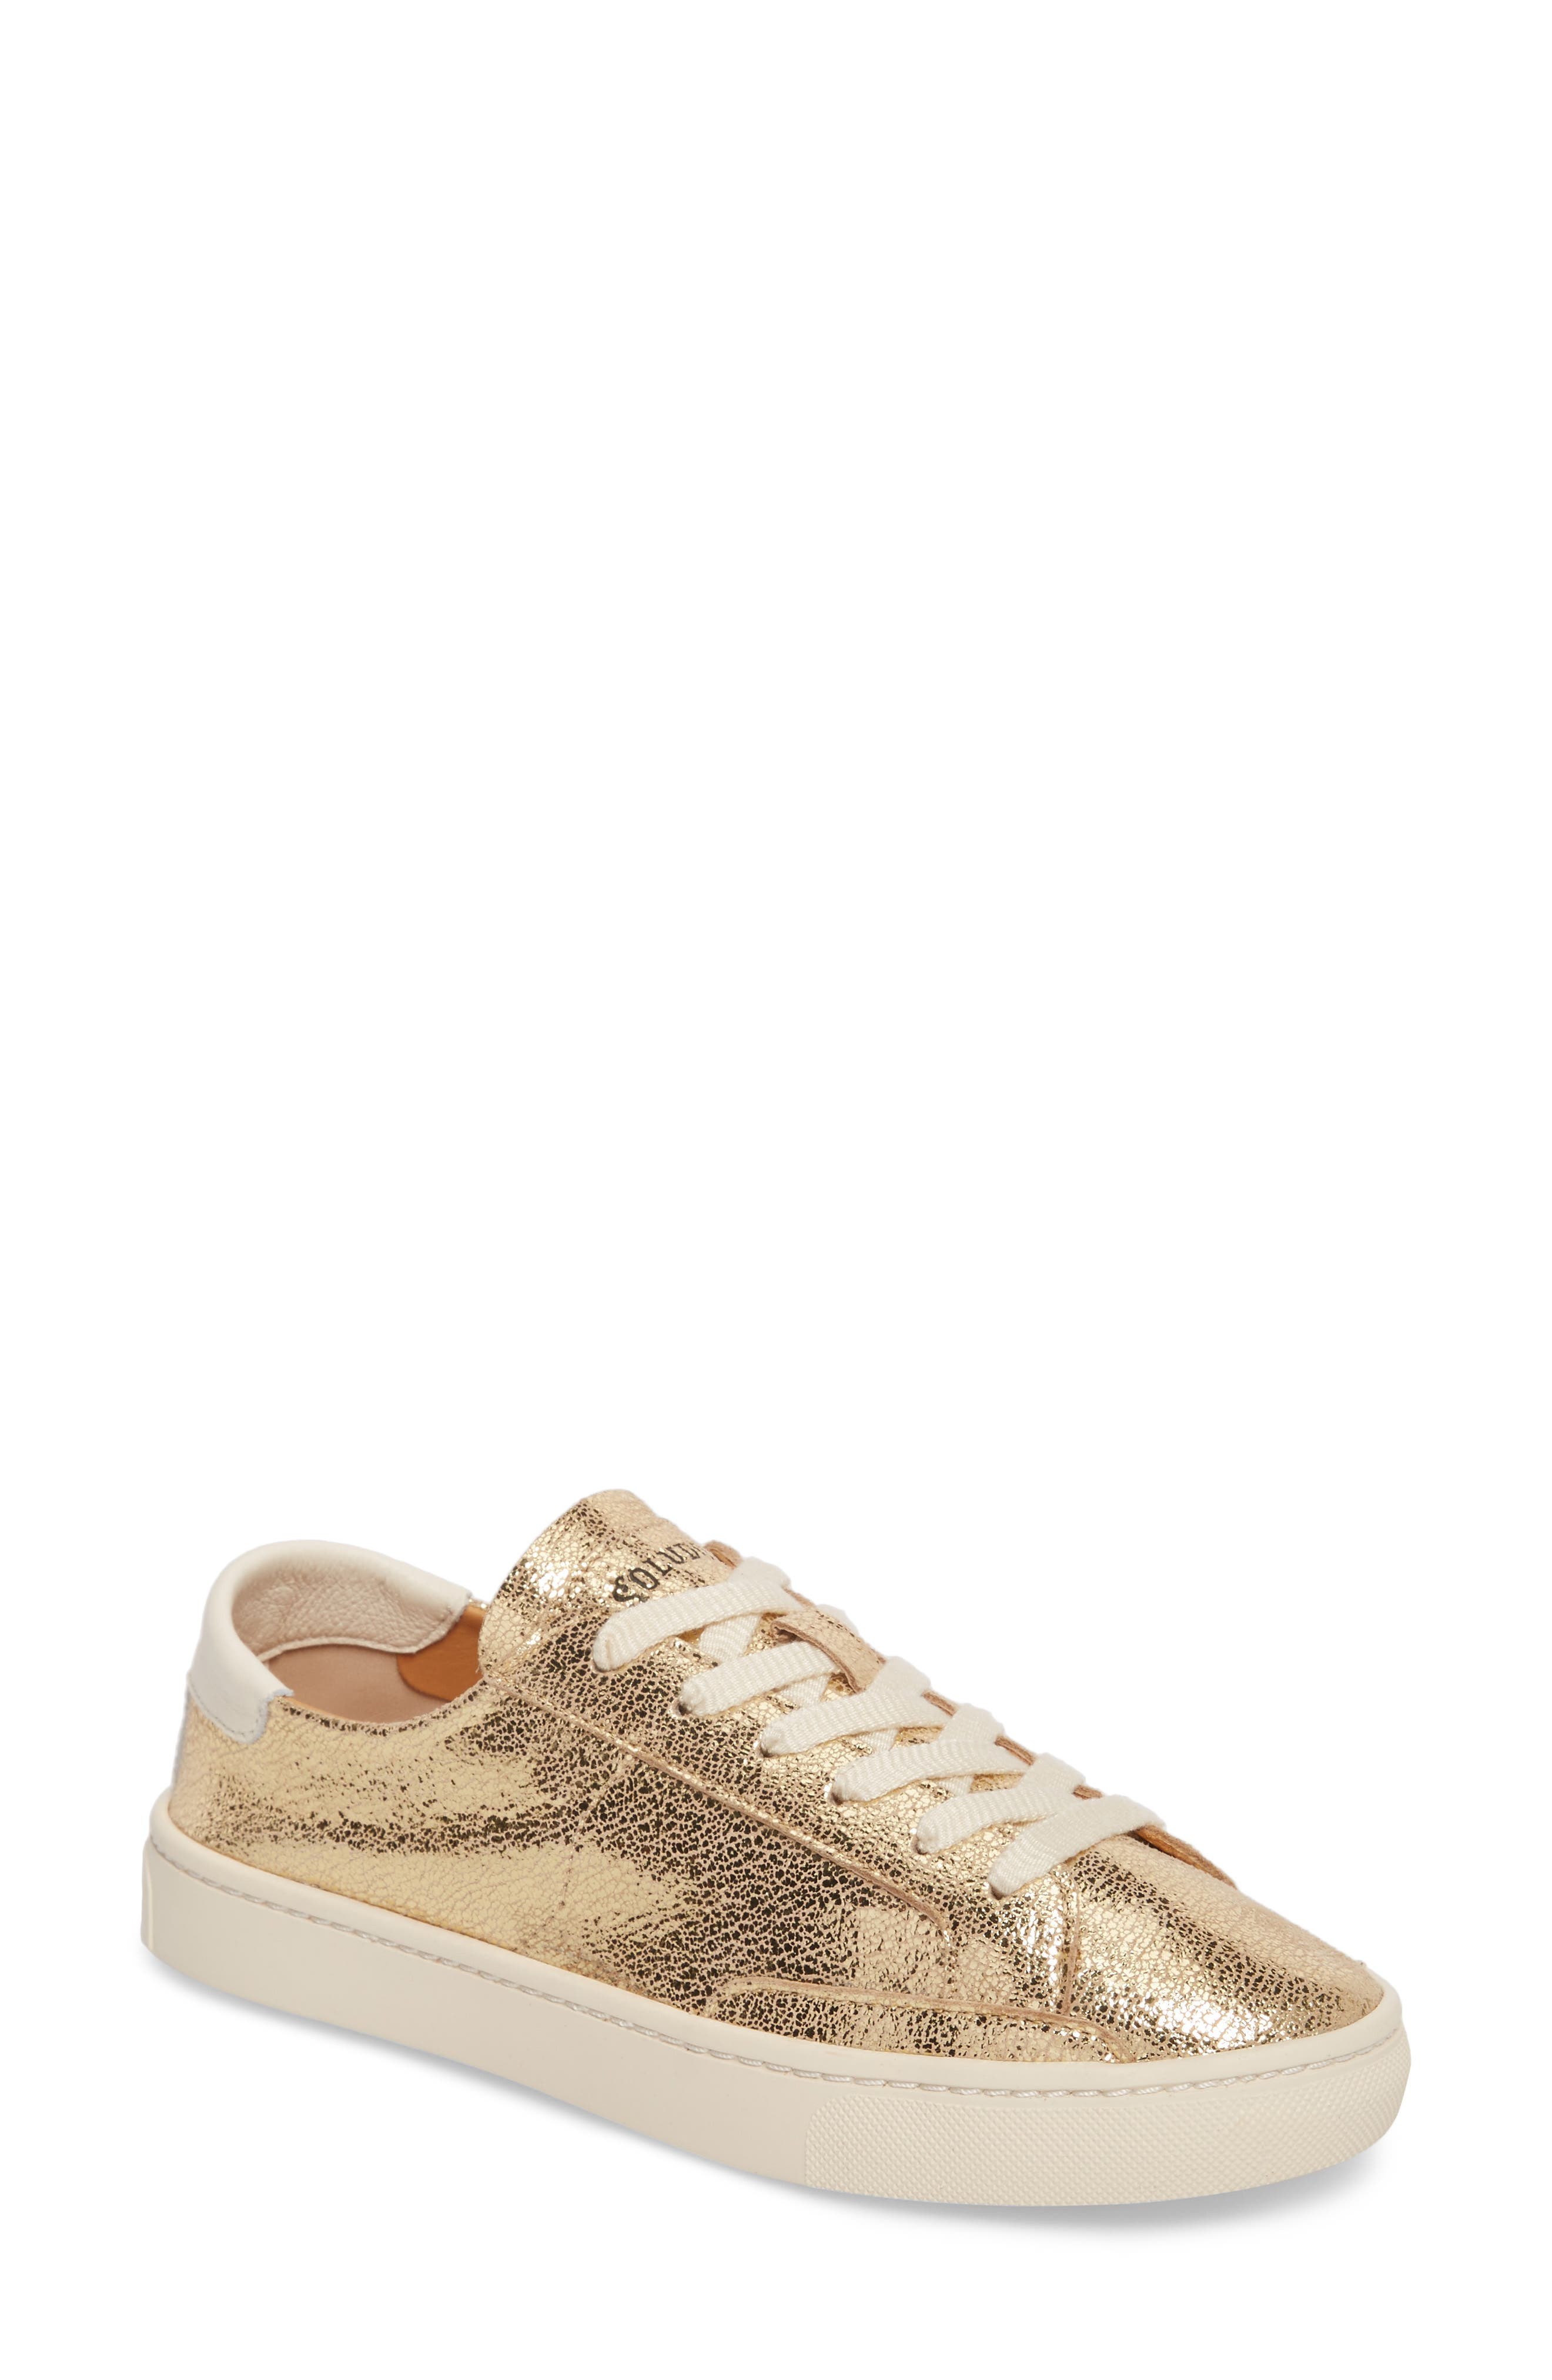 Ibiza Metallic Lace-Up Sneaker,                         Main,                         color, Pale Gold Leather